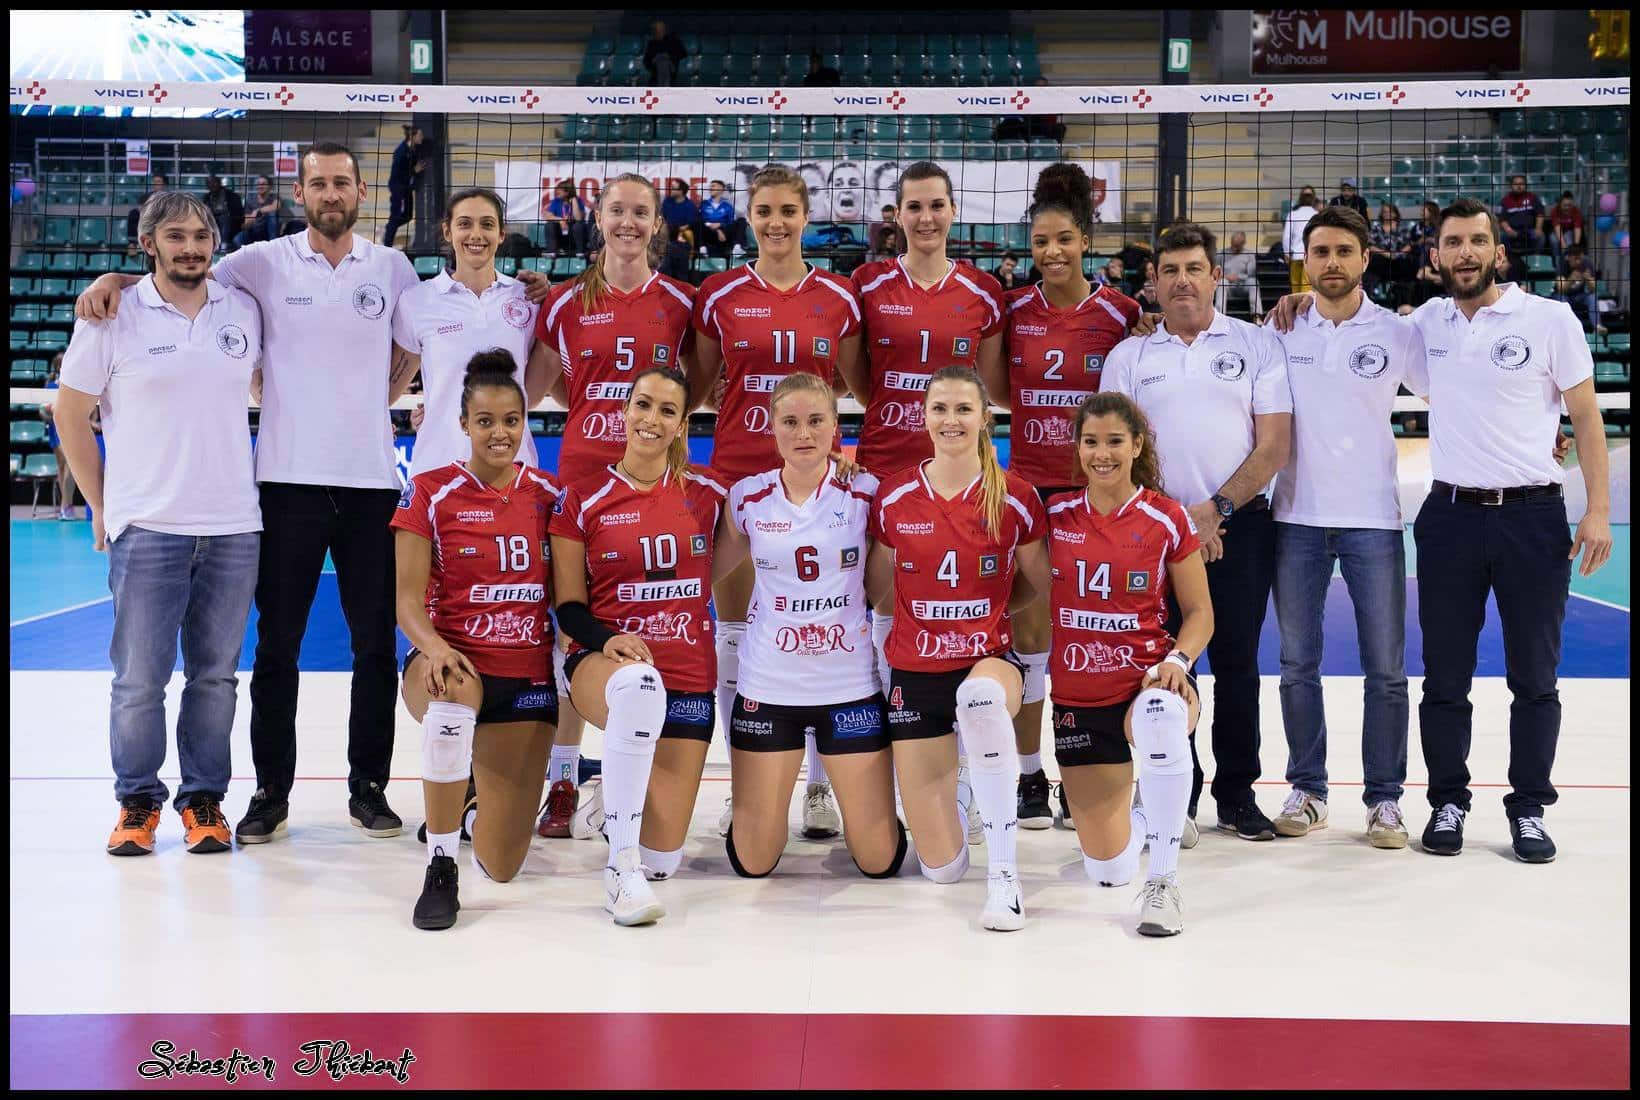 compo-chaussures-volleypack-st-raphael-var-volley-ball-coupe-de-france-2019-3